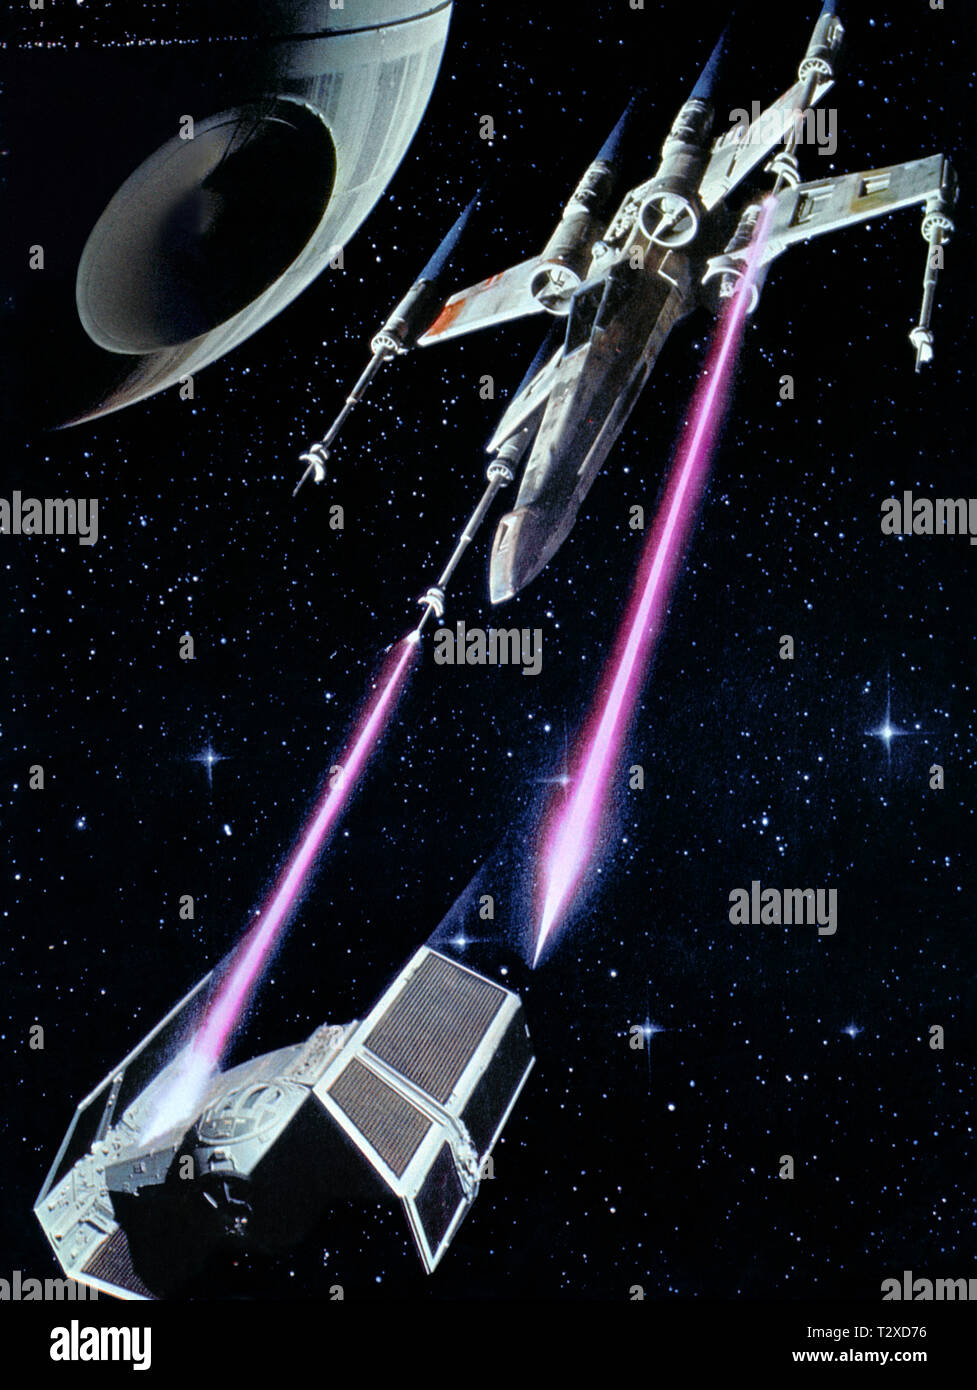 X-WING FIGHTER, TIE FIGHTER, STAR WARS: EPISODE IV - A NEW HOPE, 1977 Stock Photo